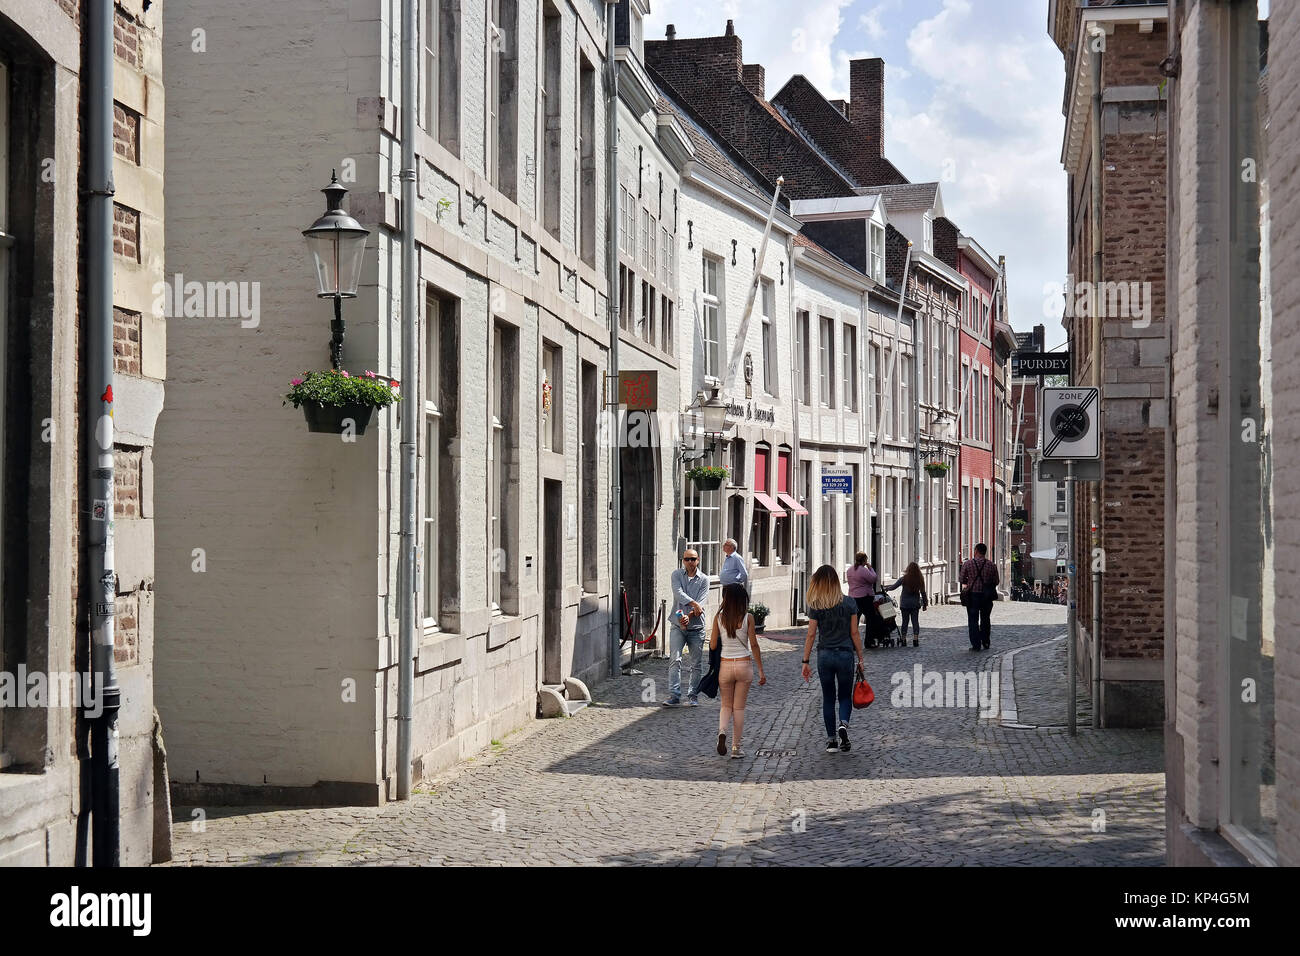 Pedestrian zone, shopping district in the city centre of Maastricht - Stock Image